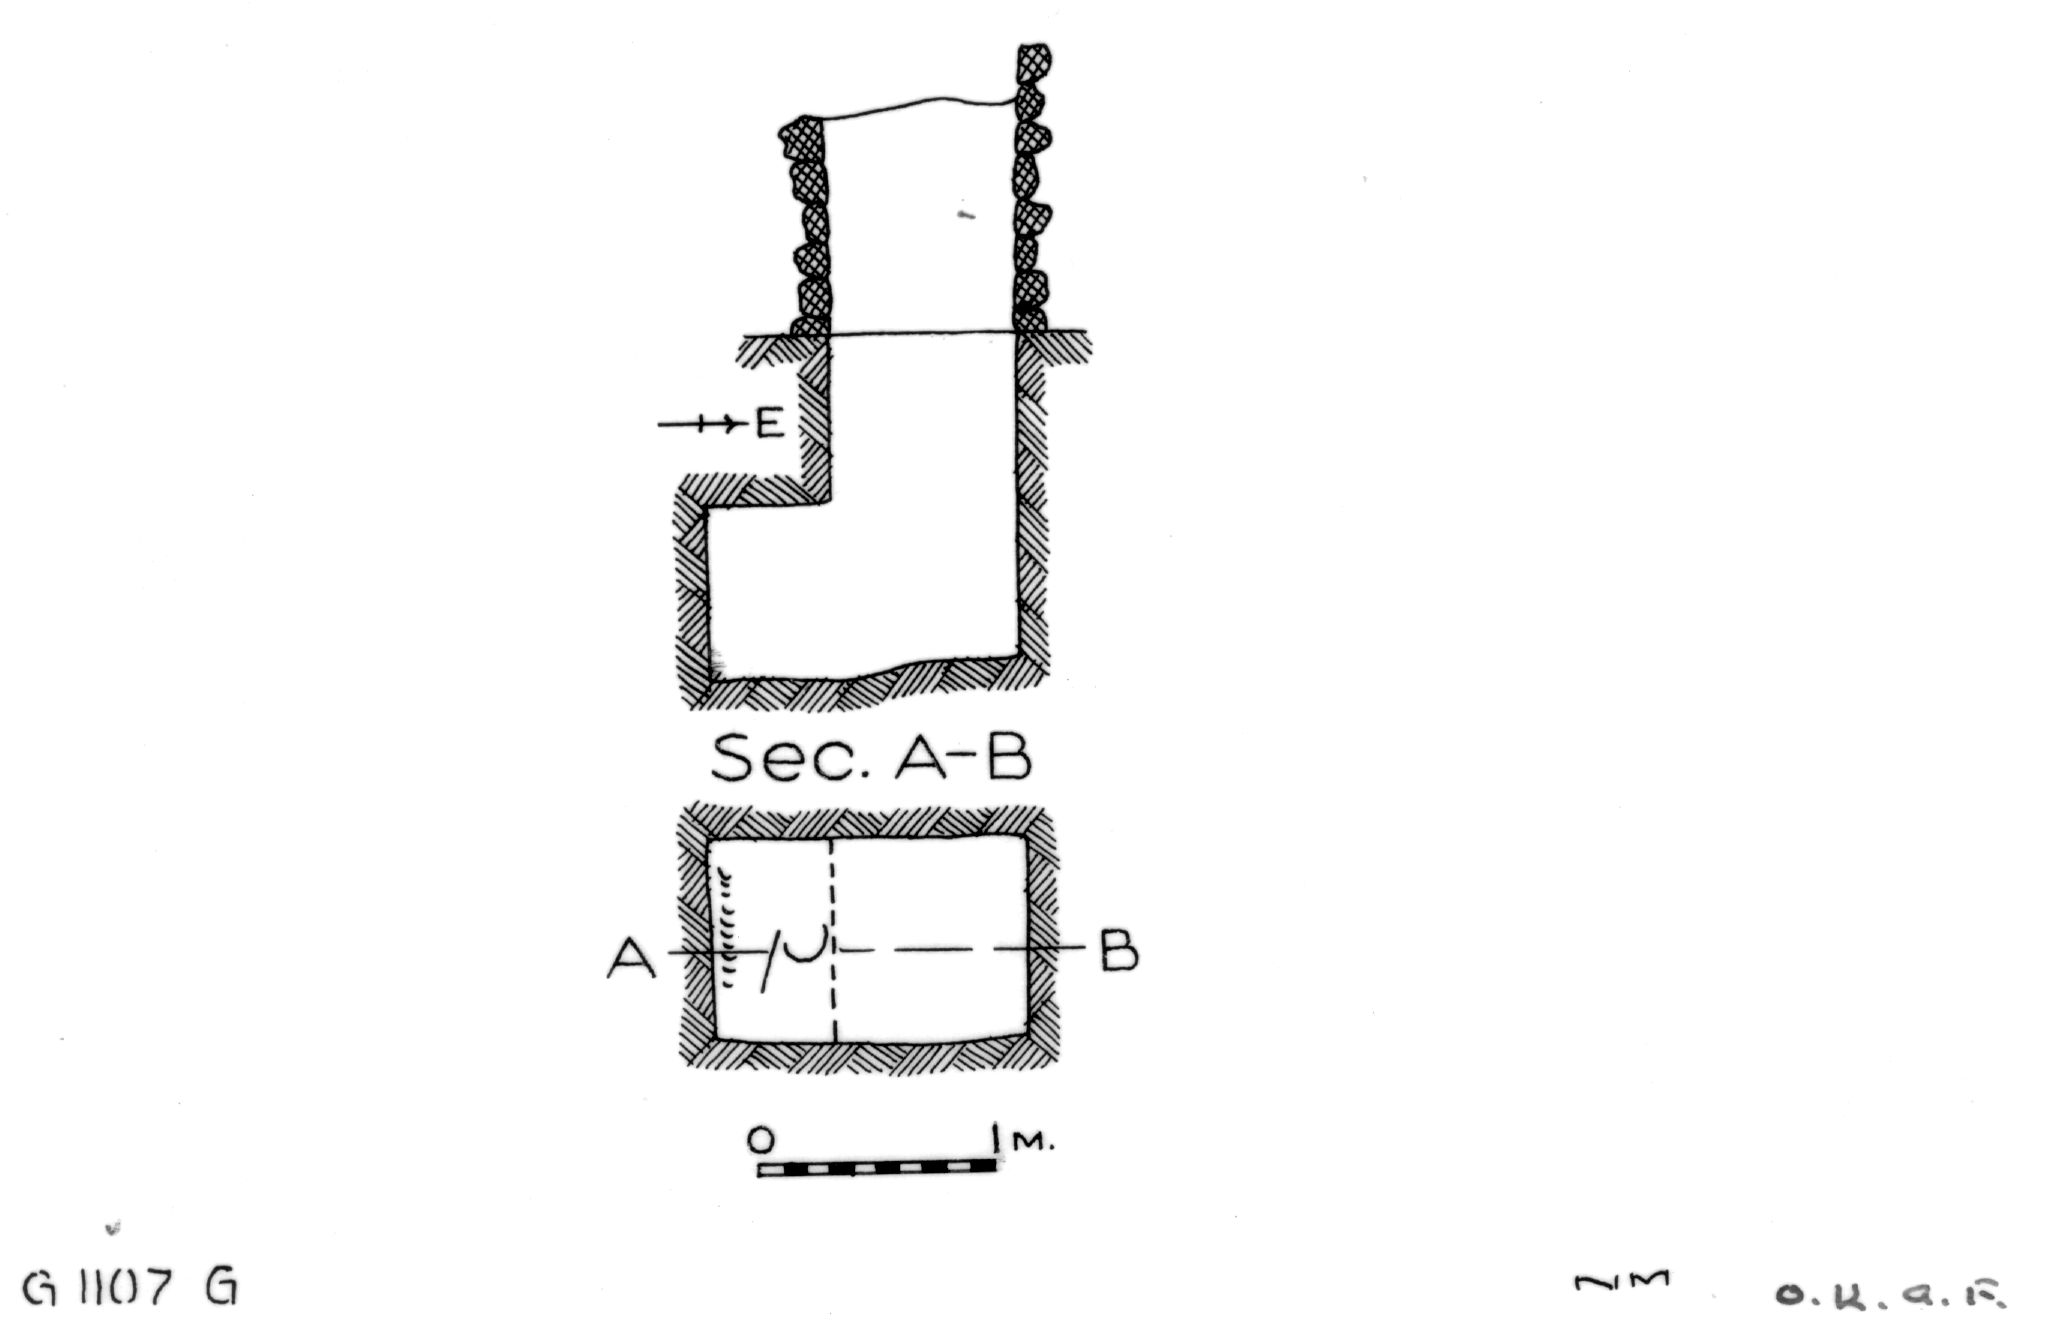 Maps and plans: G 1107, Shaft G